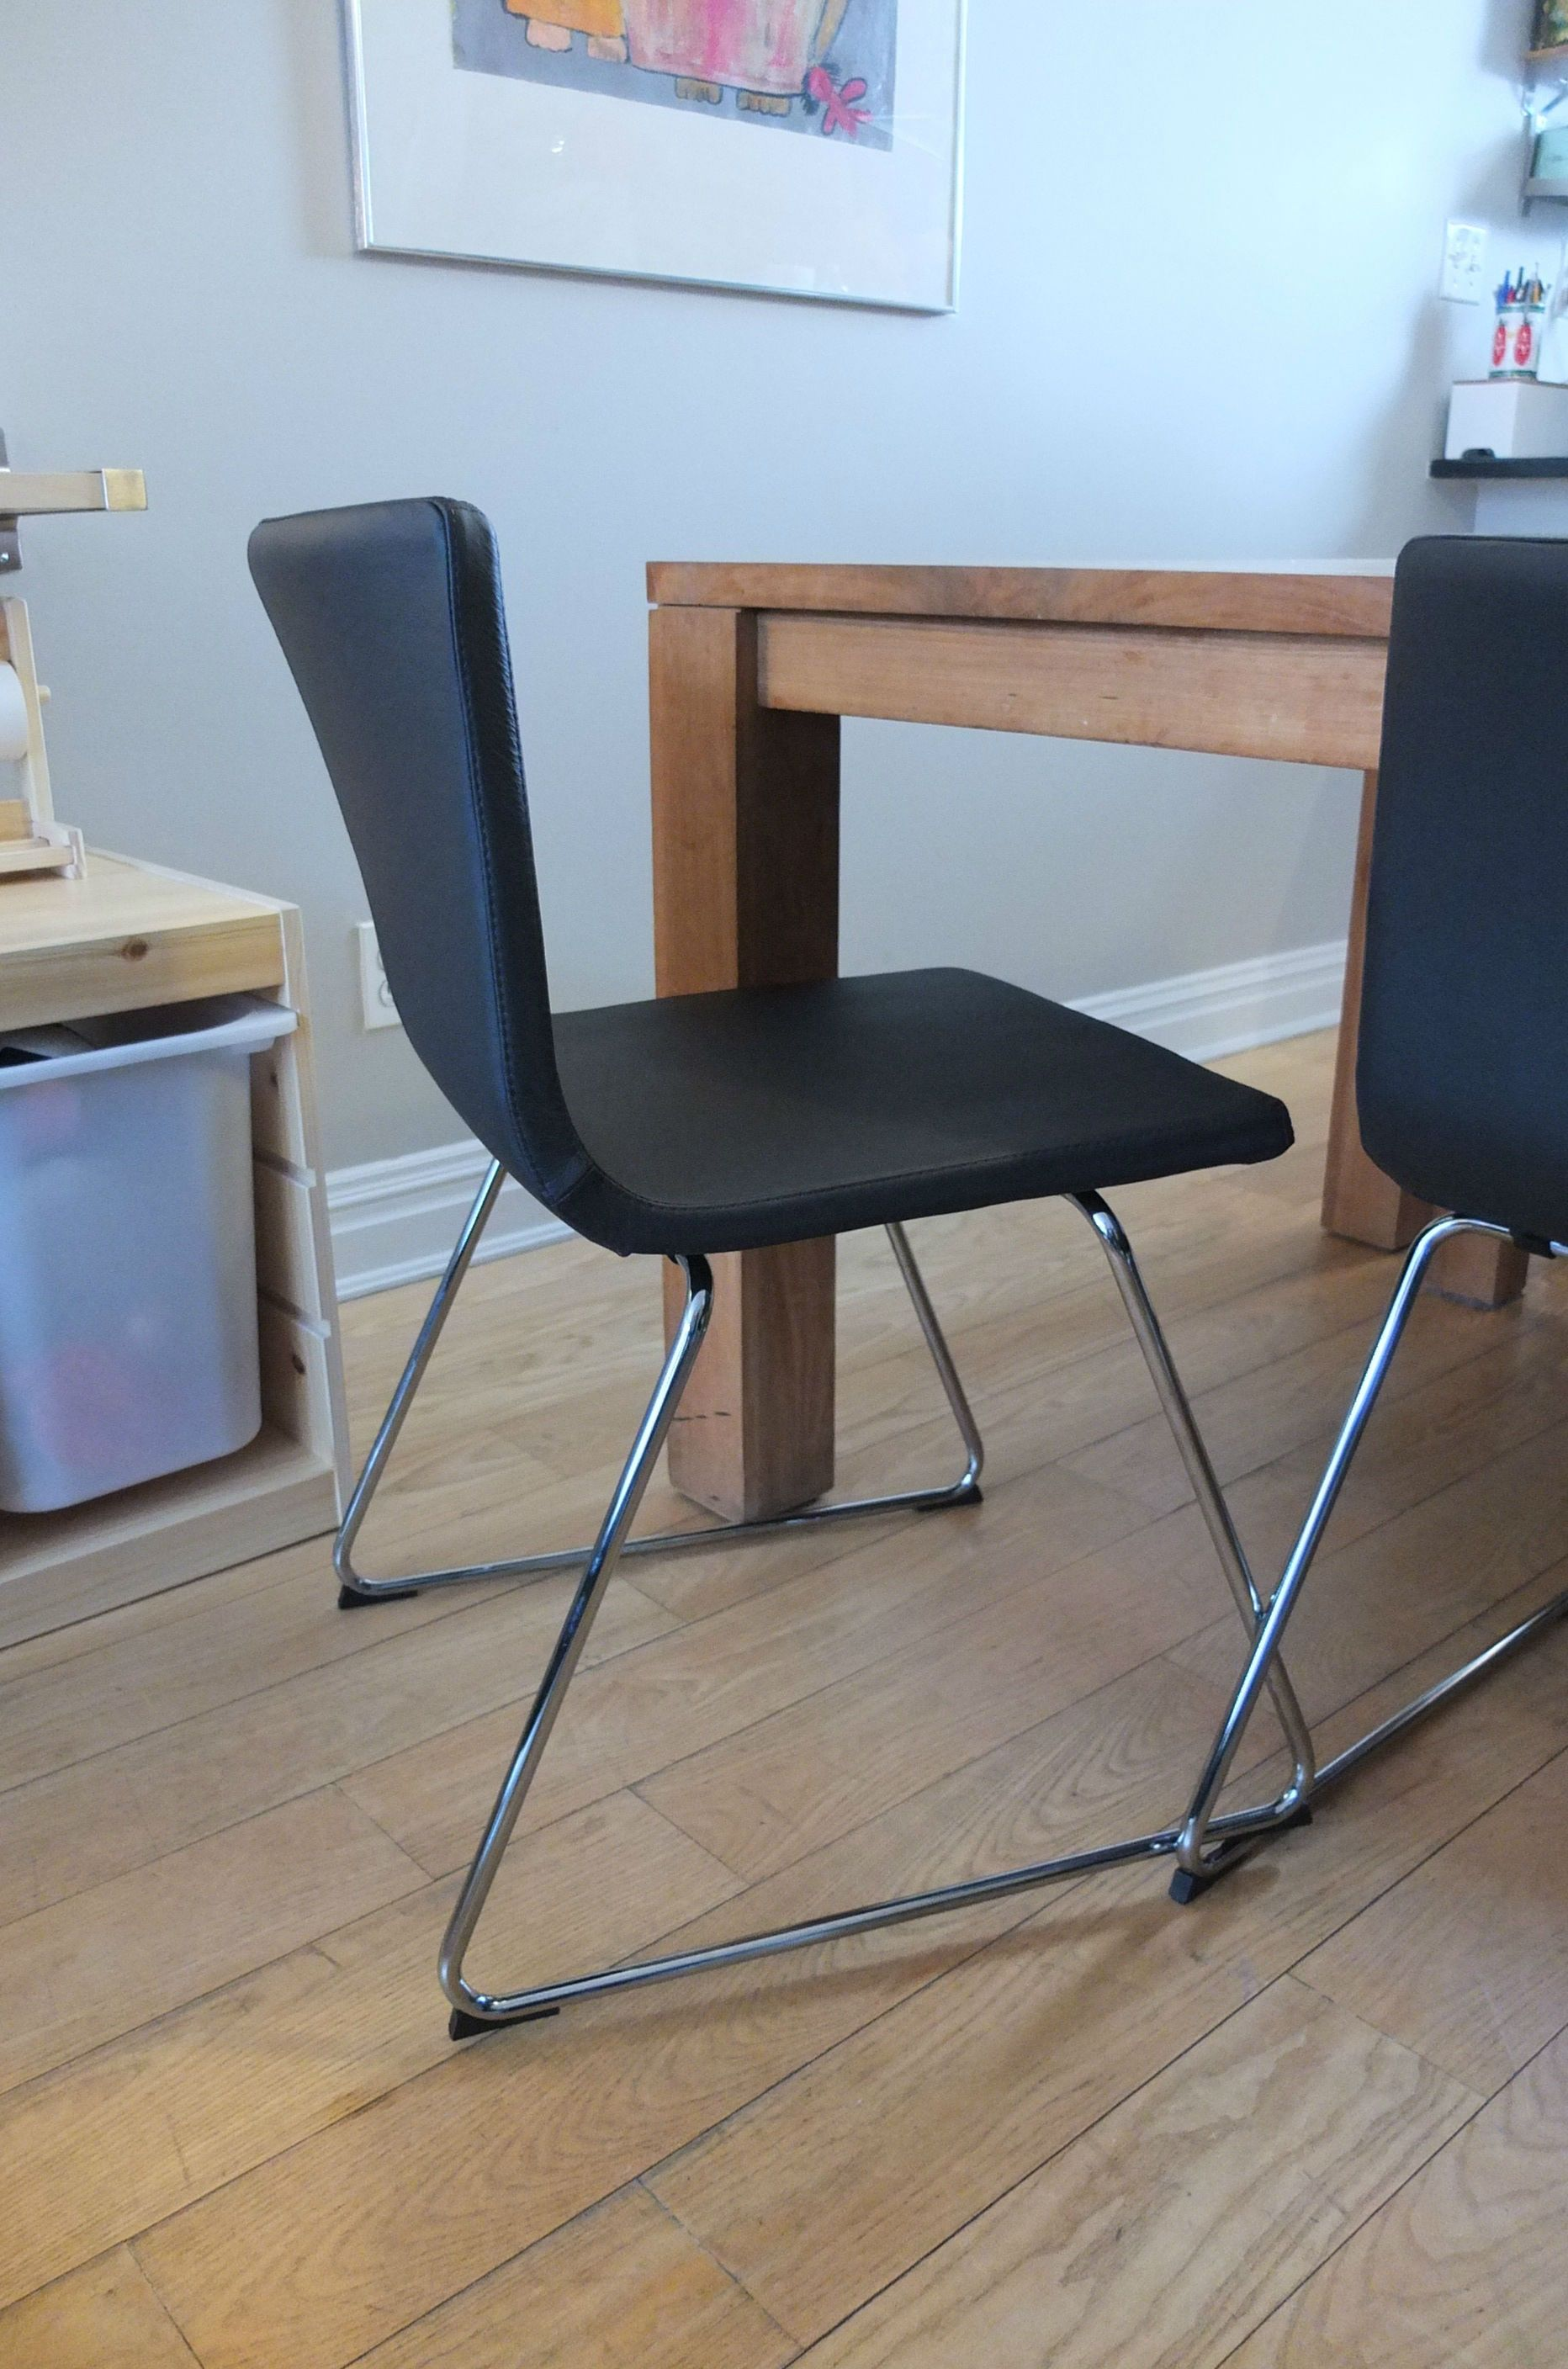 clean leather chair smell ikea patio durable makes the bernhard easy to